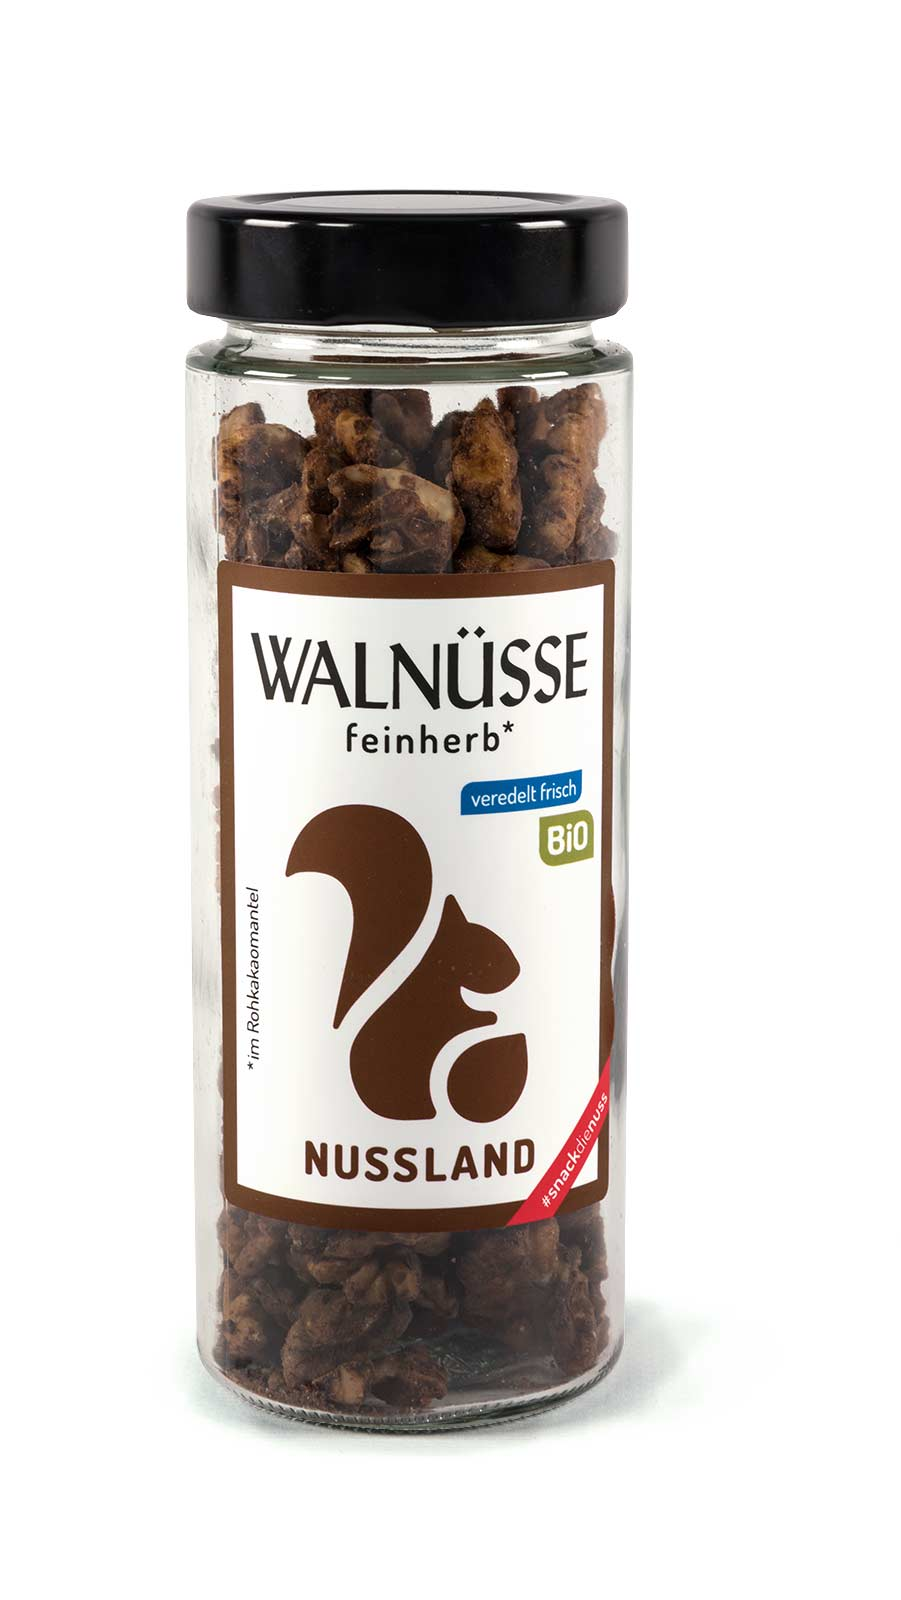 BIO Walnuss-Snack 'Feinherb'